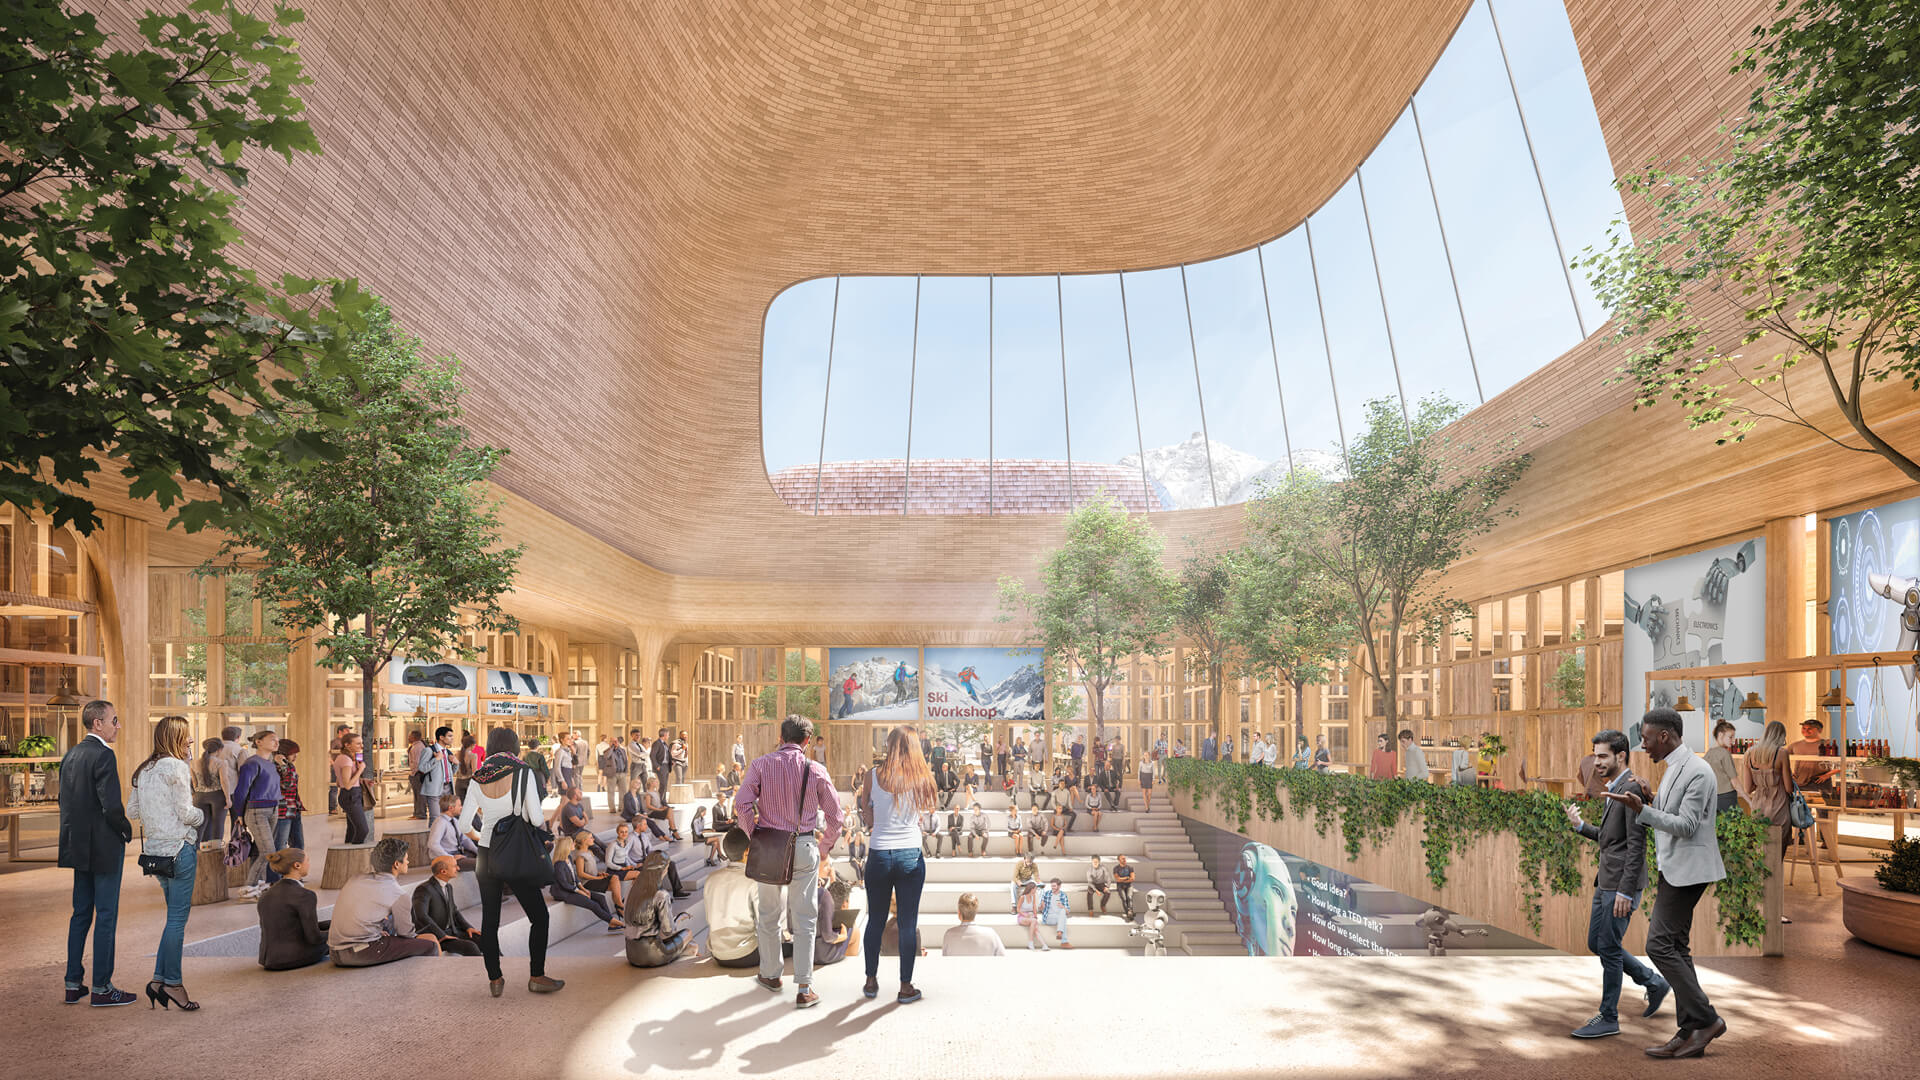 The Innhub La Punt by Foster+Partners is defined by its contoured roofscape, translating to a lofty atrium beneath| Innhub La Punt| Foster+Partners | STIRworld